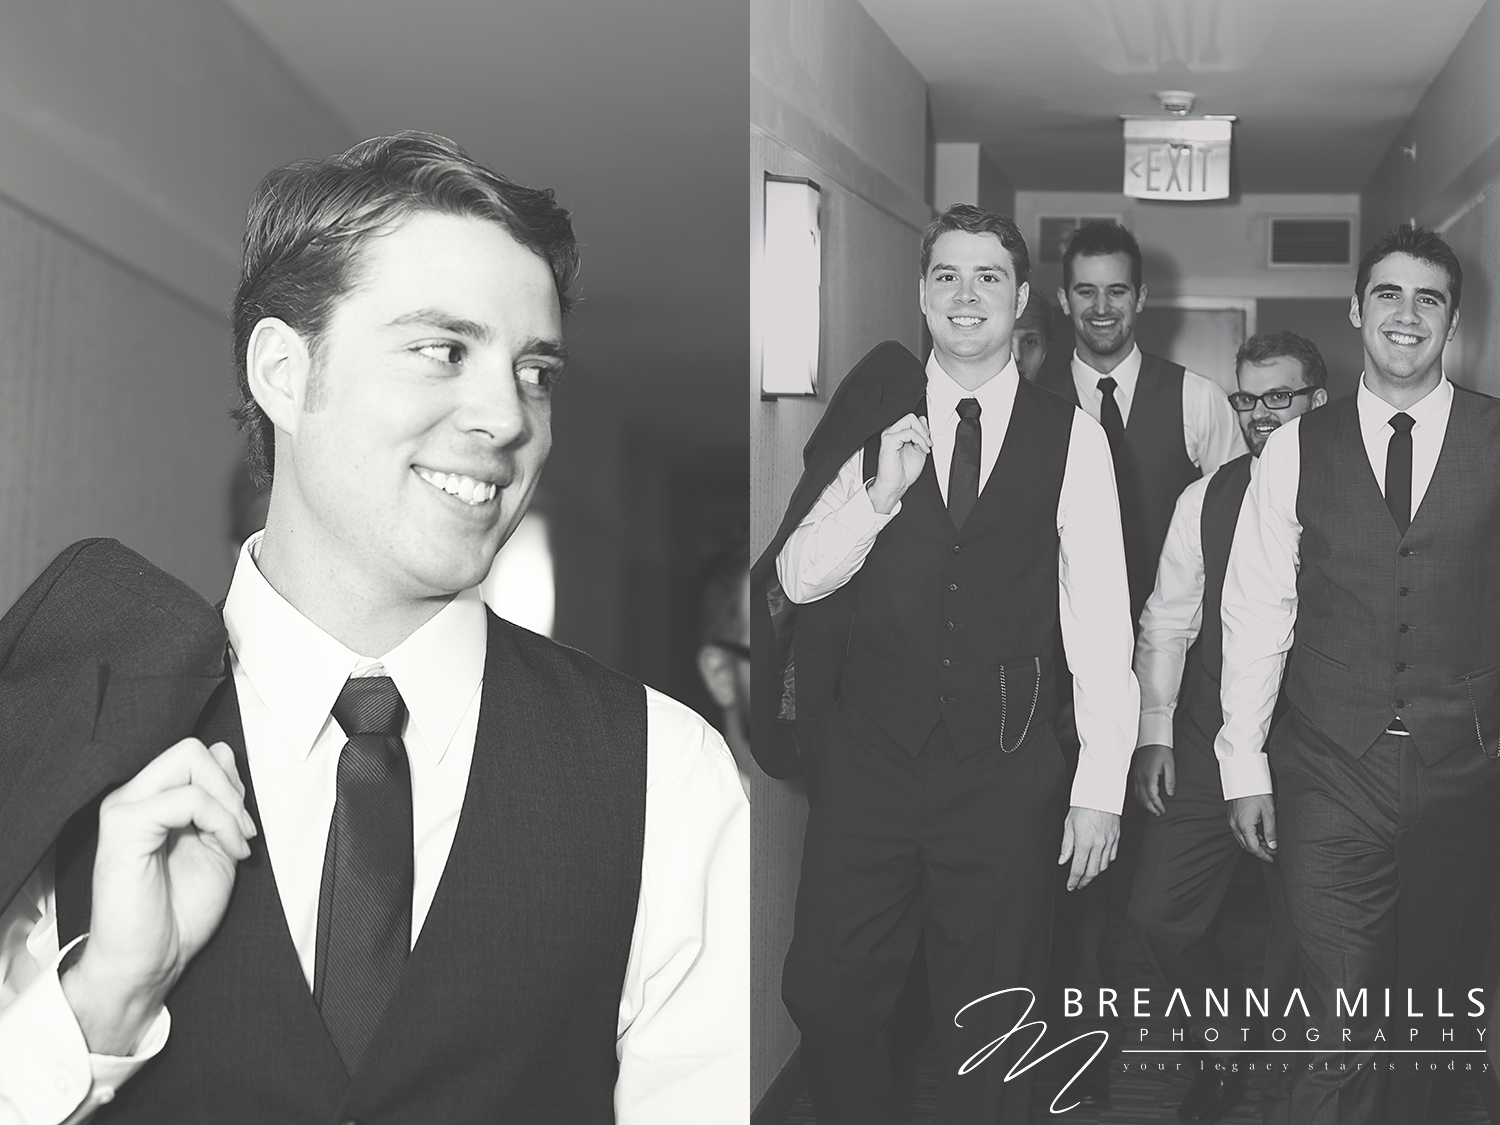 Johnson City wedding photographer Breanna Mills Photography captures groom with his groomsmen for portraits on wedding day at Meadowview Convention Center. Preparing for wedding at the Corey Ippolito Winery wedding venue.